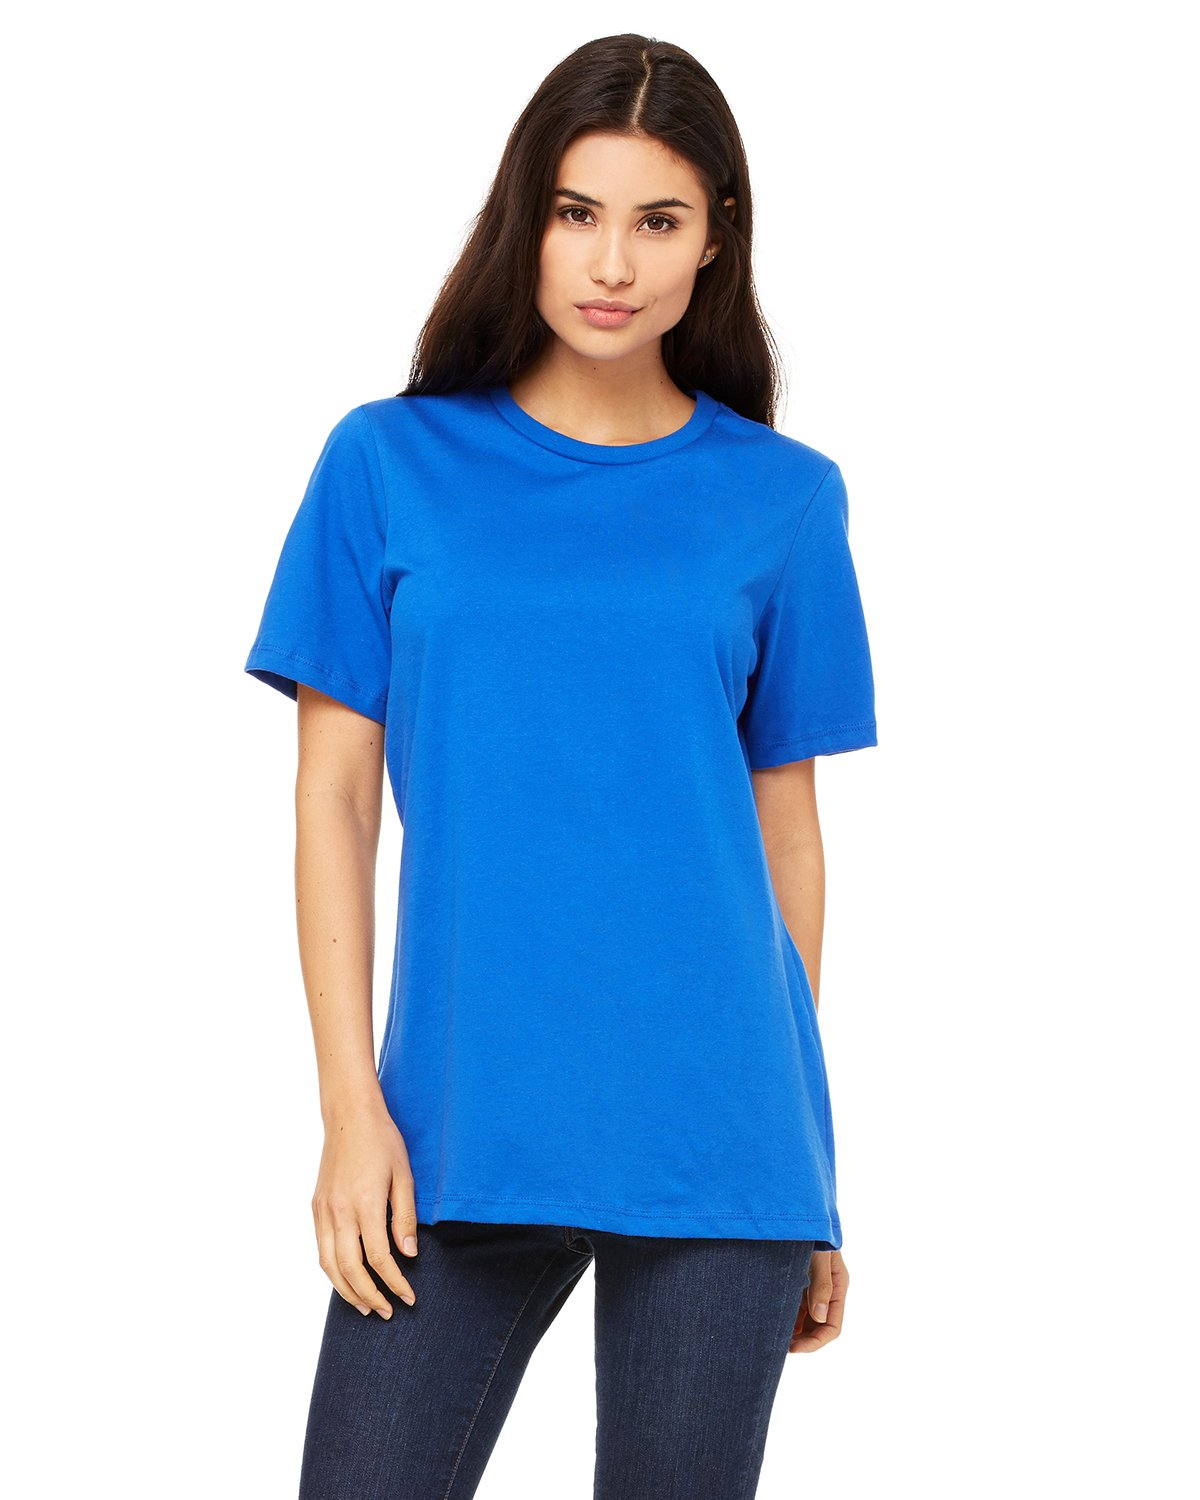 Bella + Canvas - B6400 - Ladies' Relaxed Jersey Short-Sleeve T-Shirt